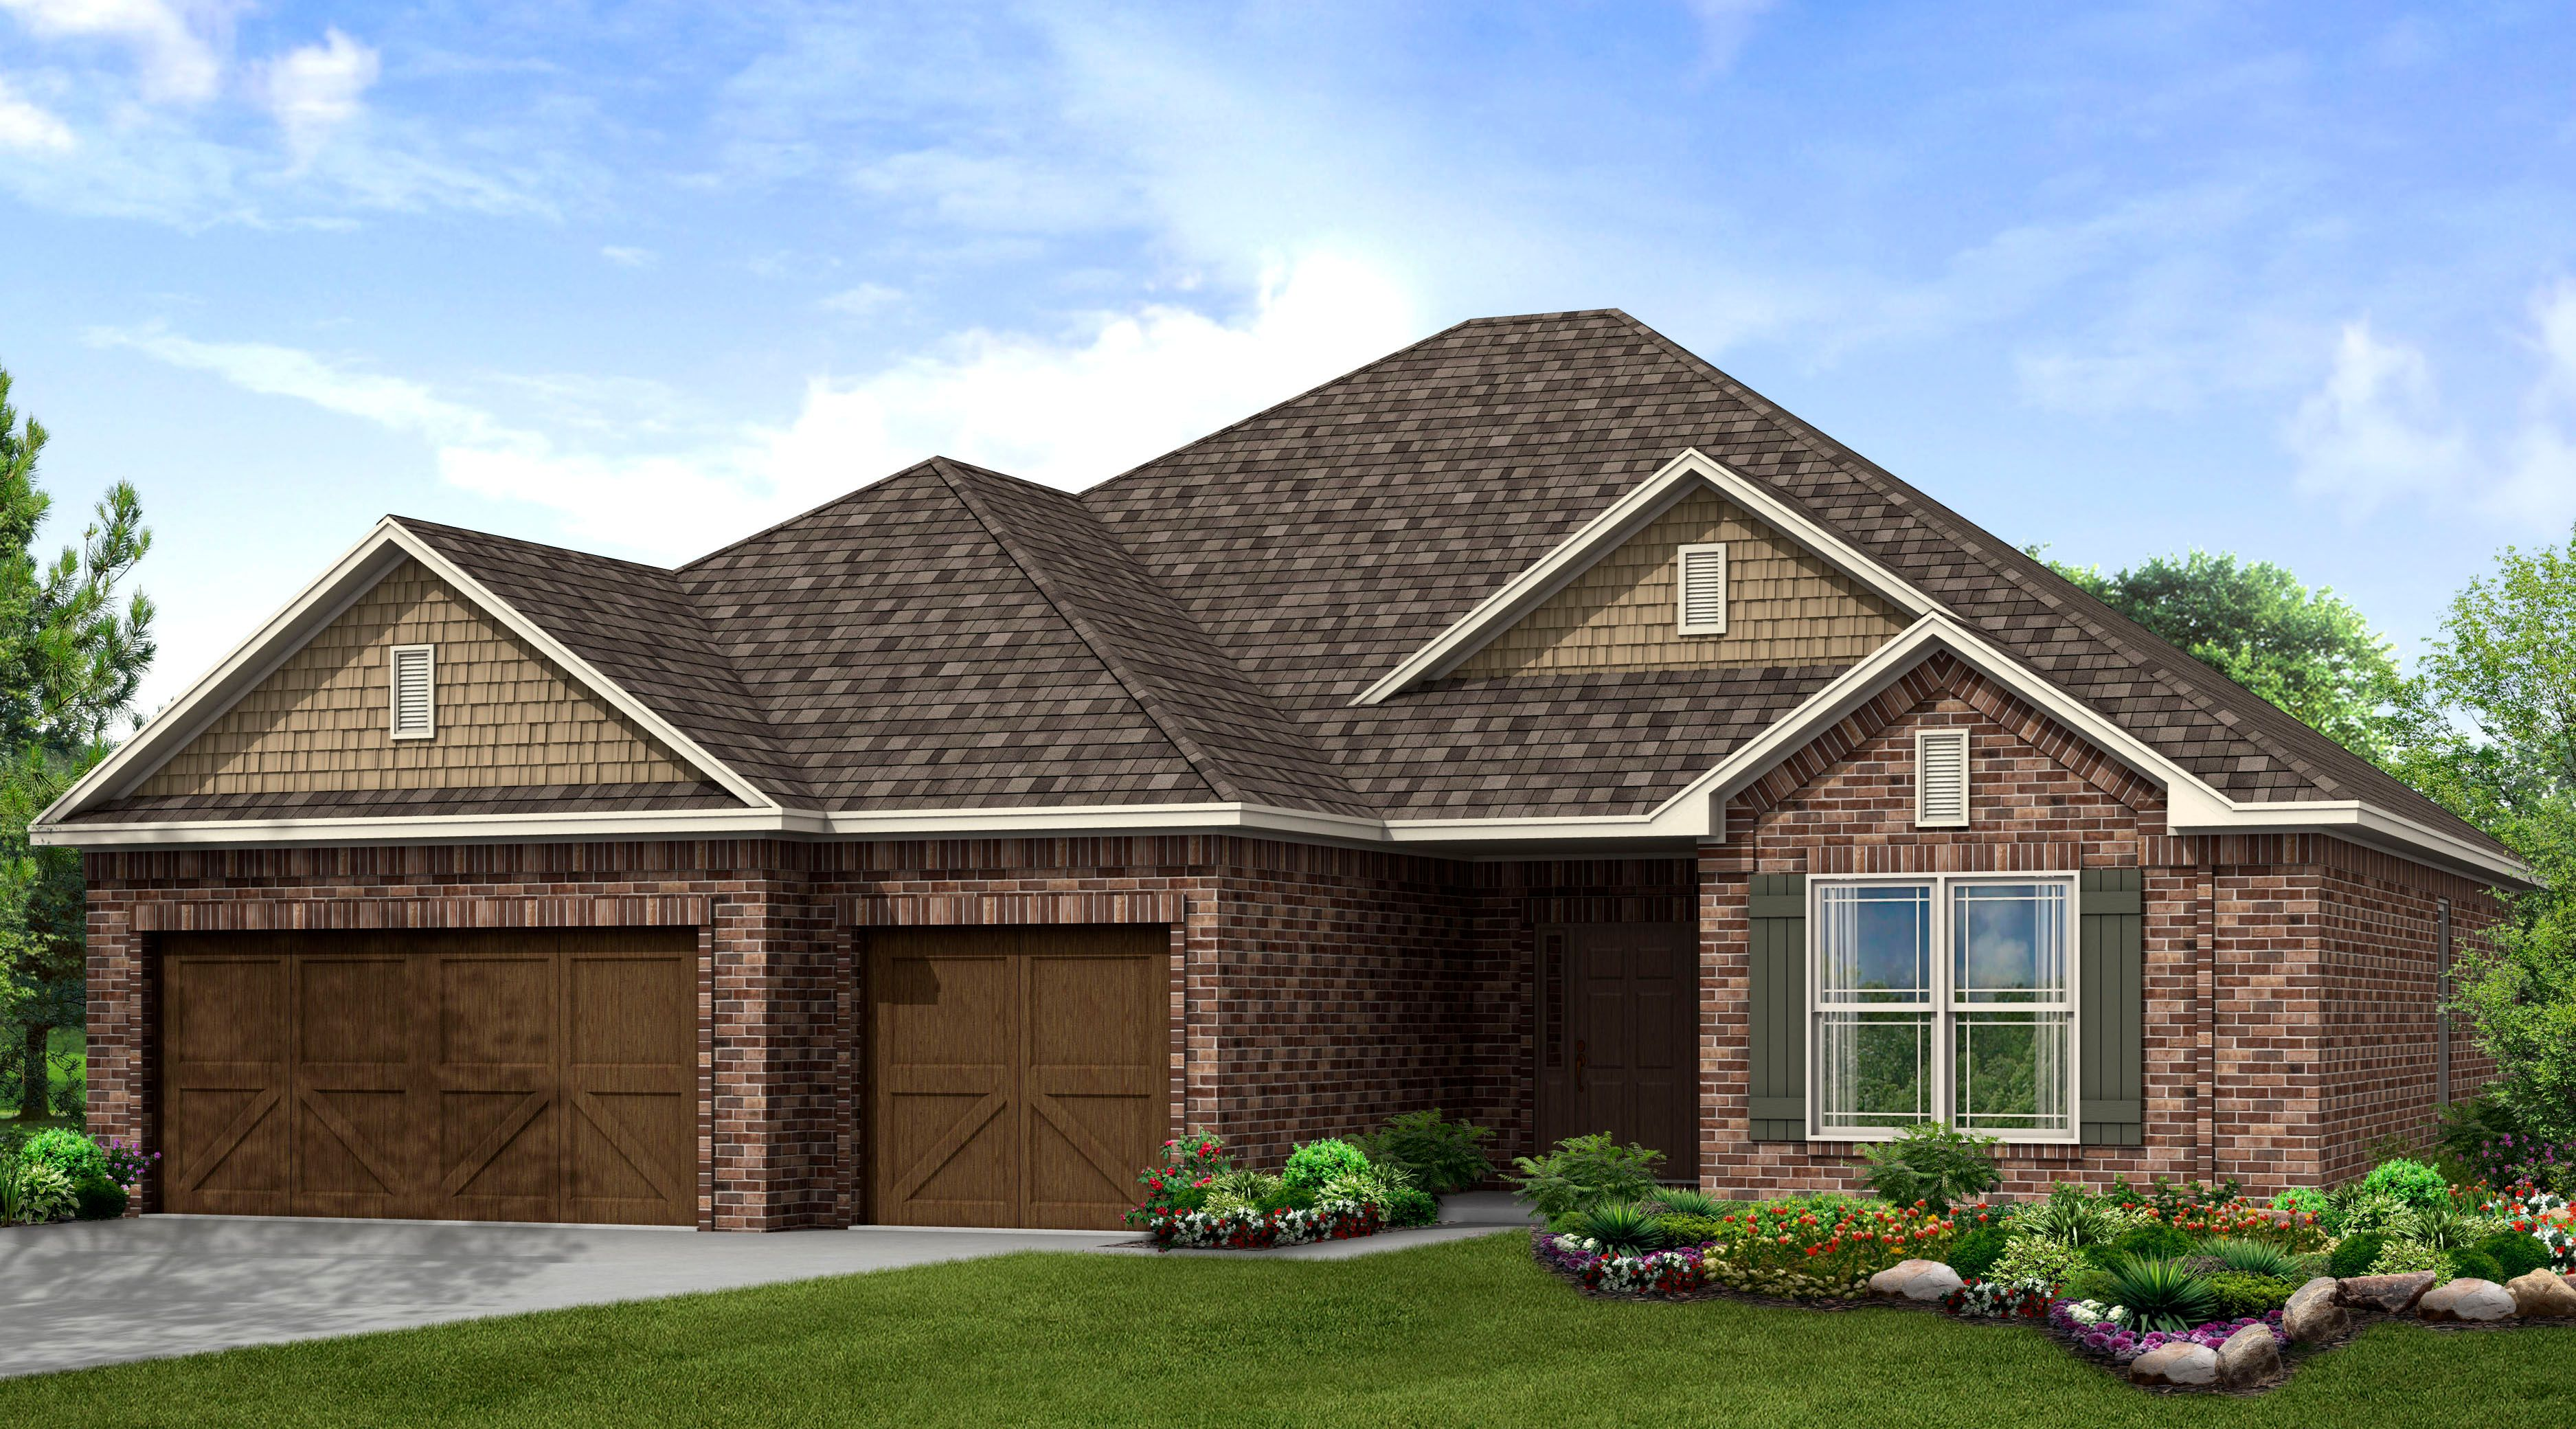 lee signature homes in broken arrow oklahoma